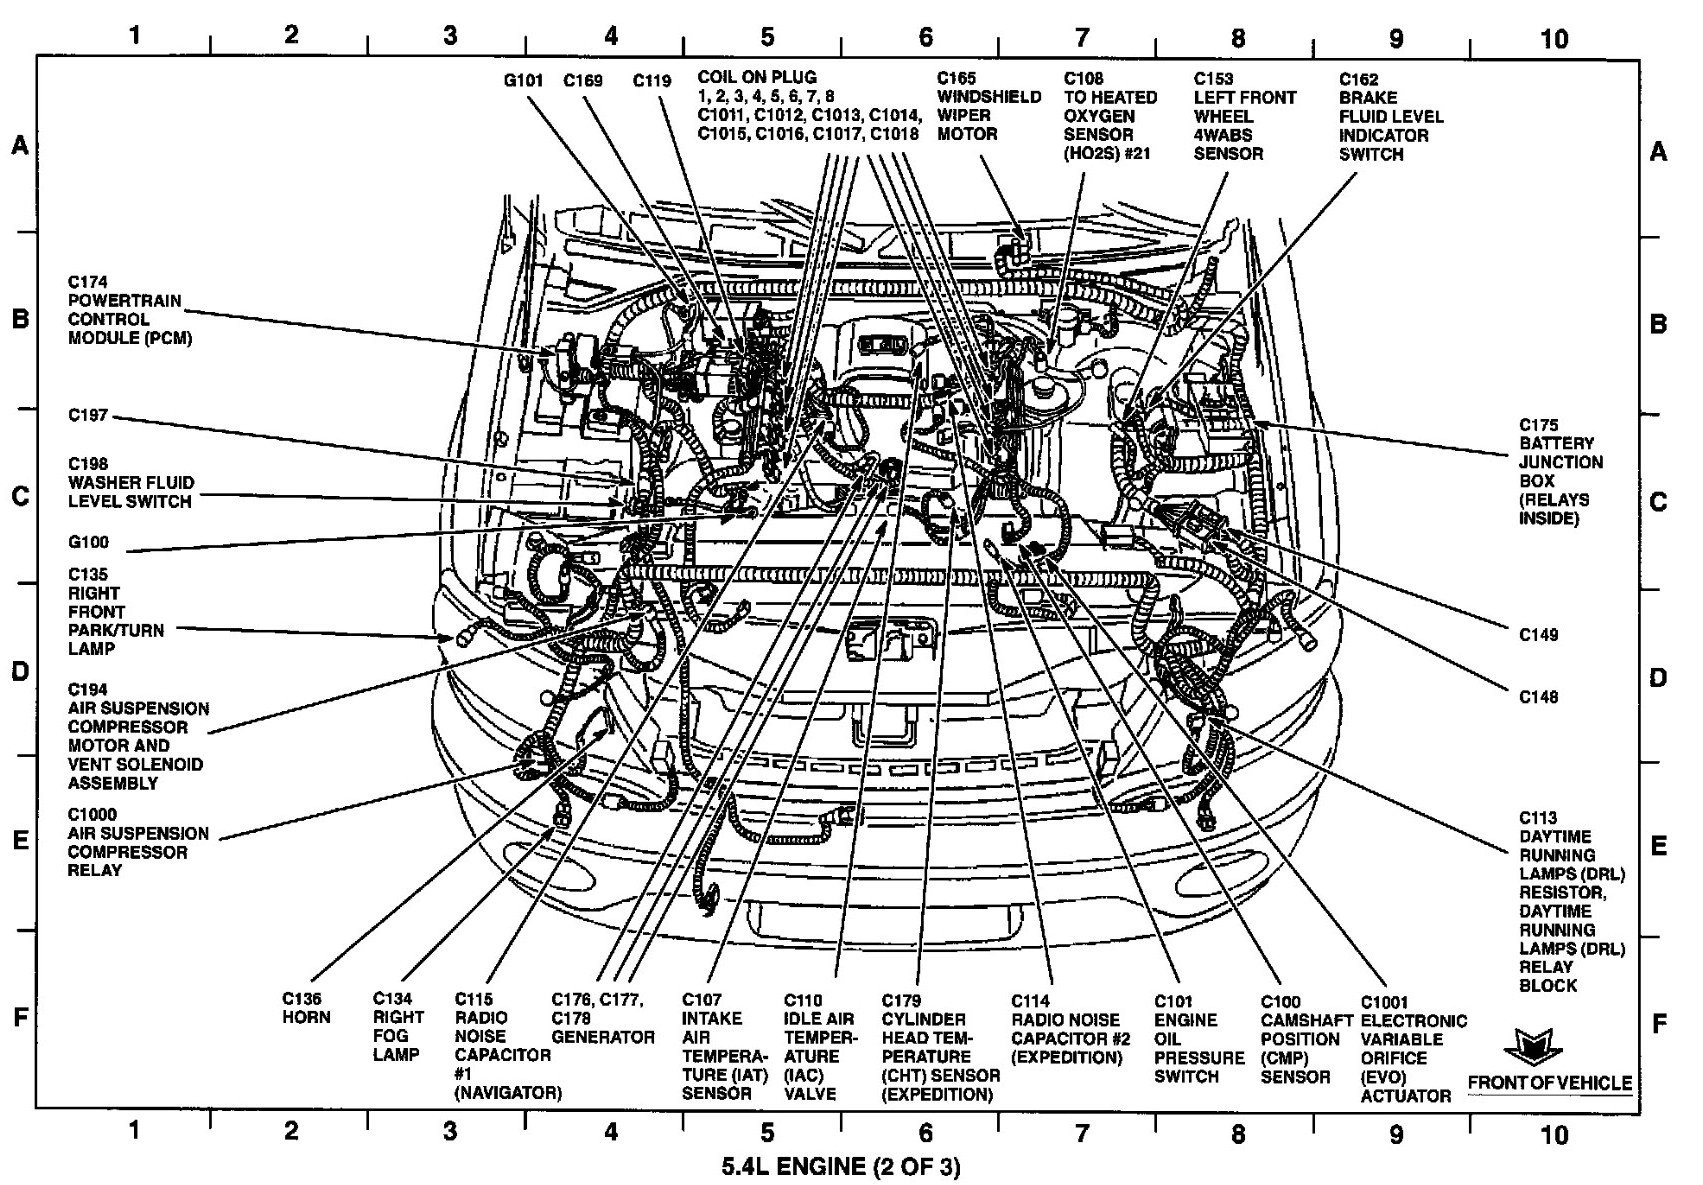 2012 jeep liberty wiring diagram - wiring diagrams database  diamondcarservice.it